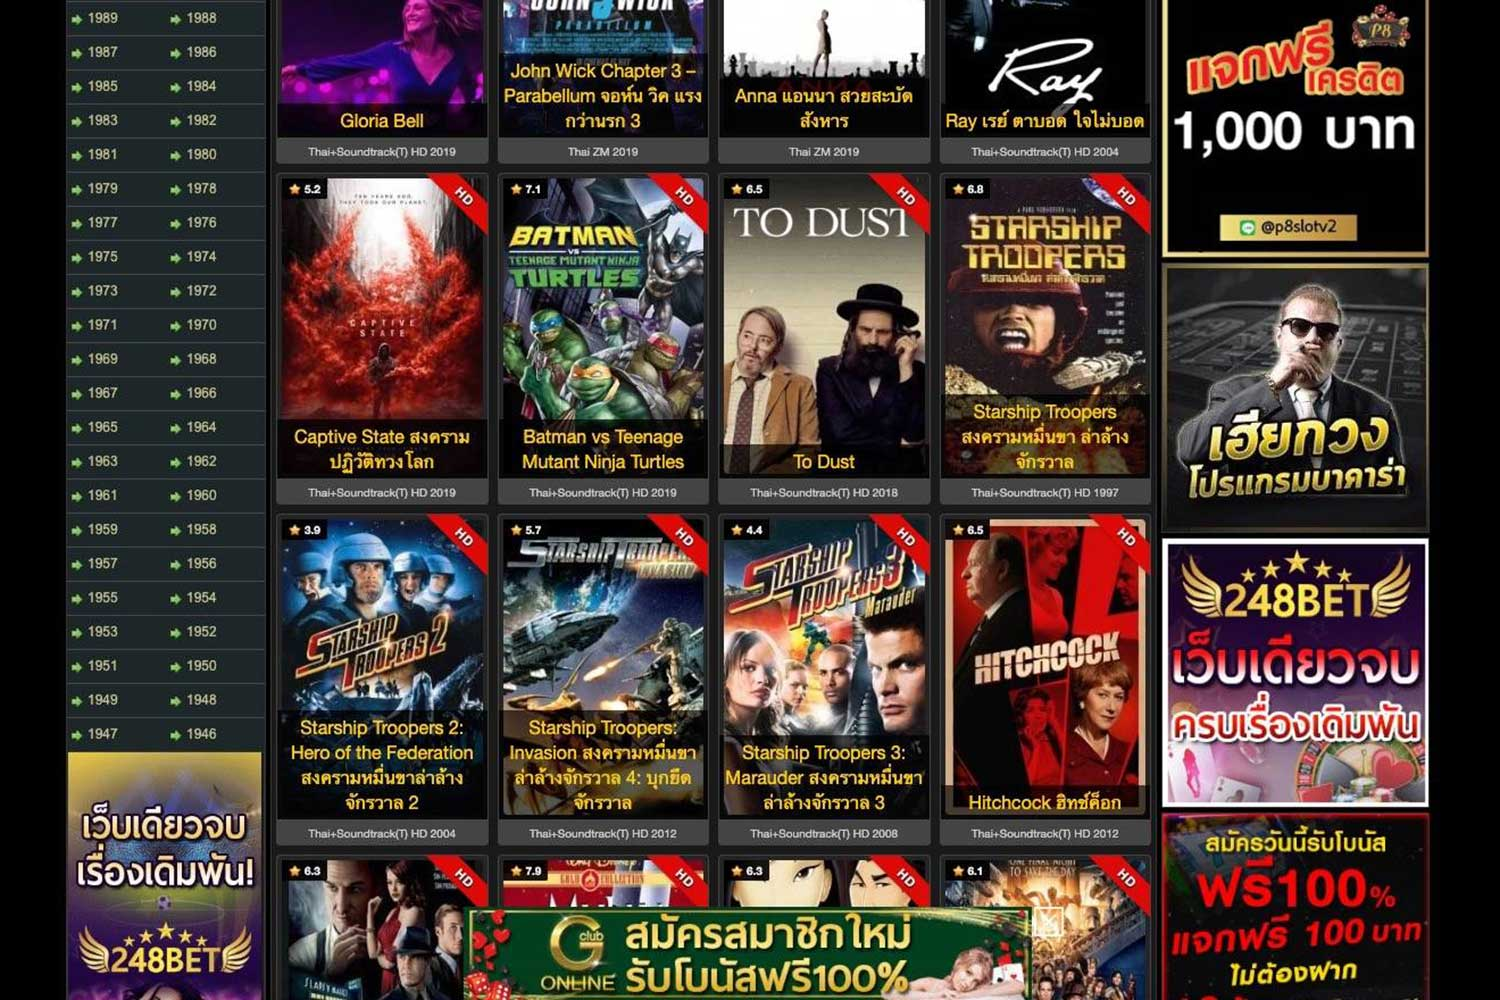 Top-rated website movie2free.com streamed about 3,000 pirated Thai and foreign movies online. It has been shut down by the DSI and the administrator arrested. (Photo: DSI)